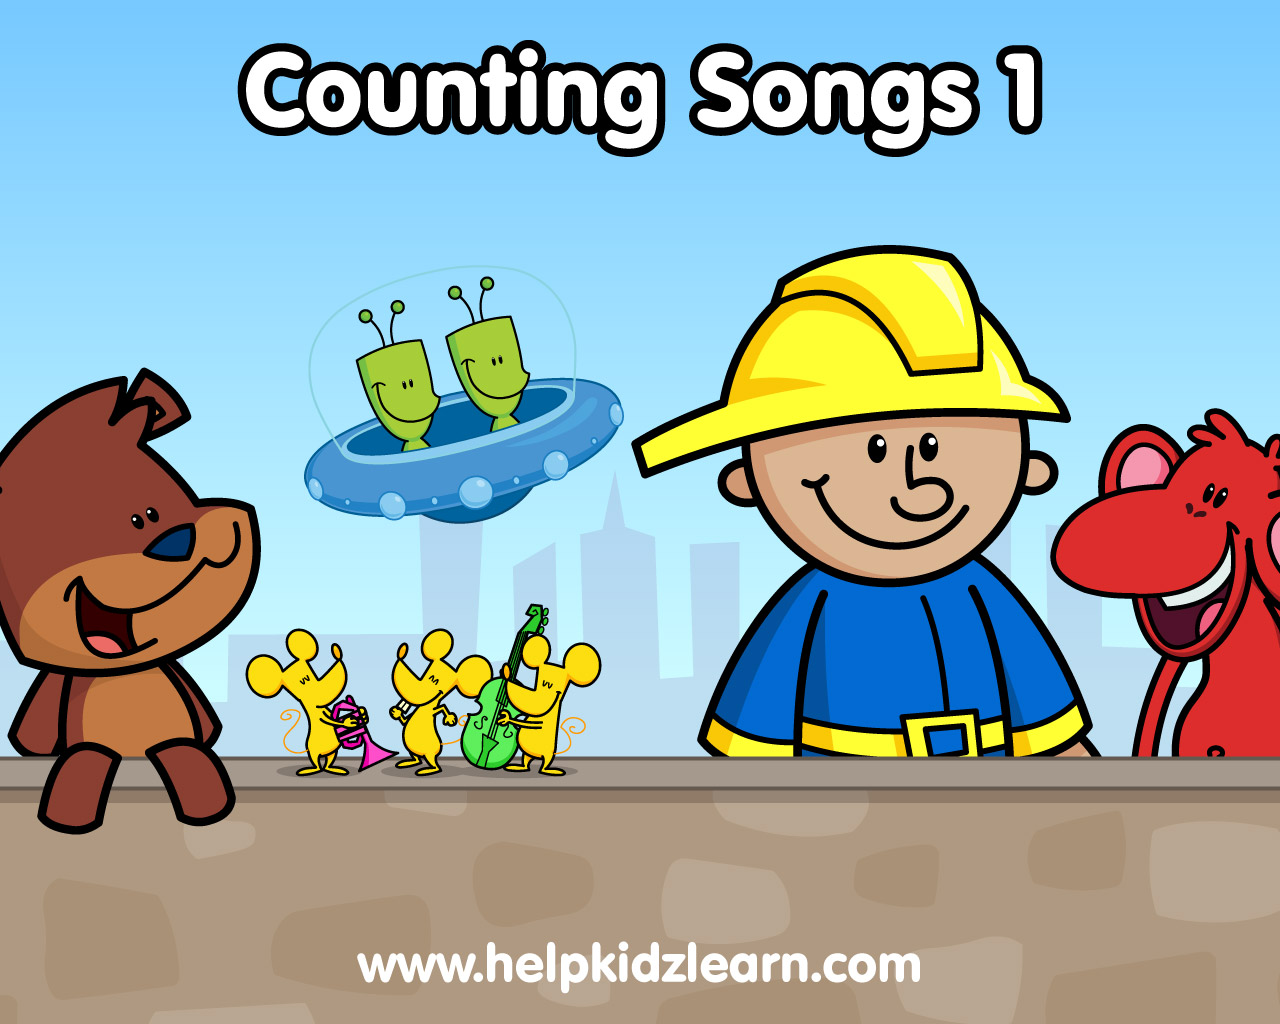 This picture is taken from http://www.helpkidzlearn.com